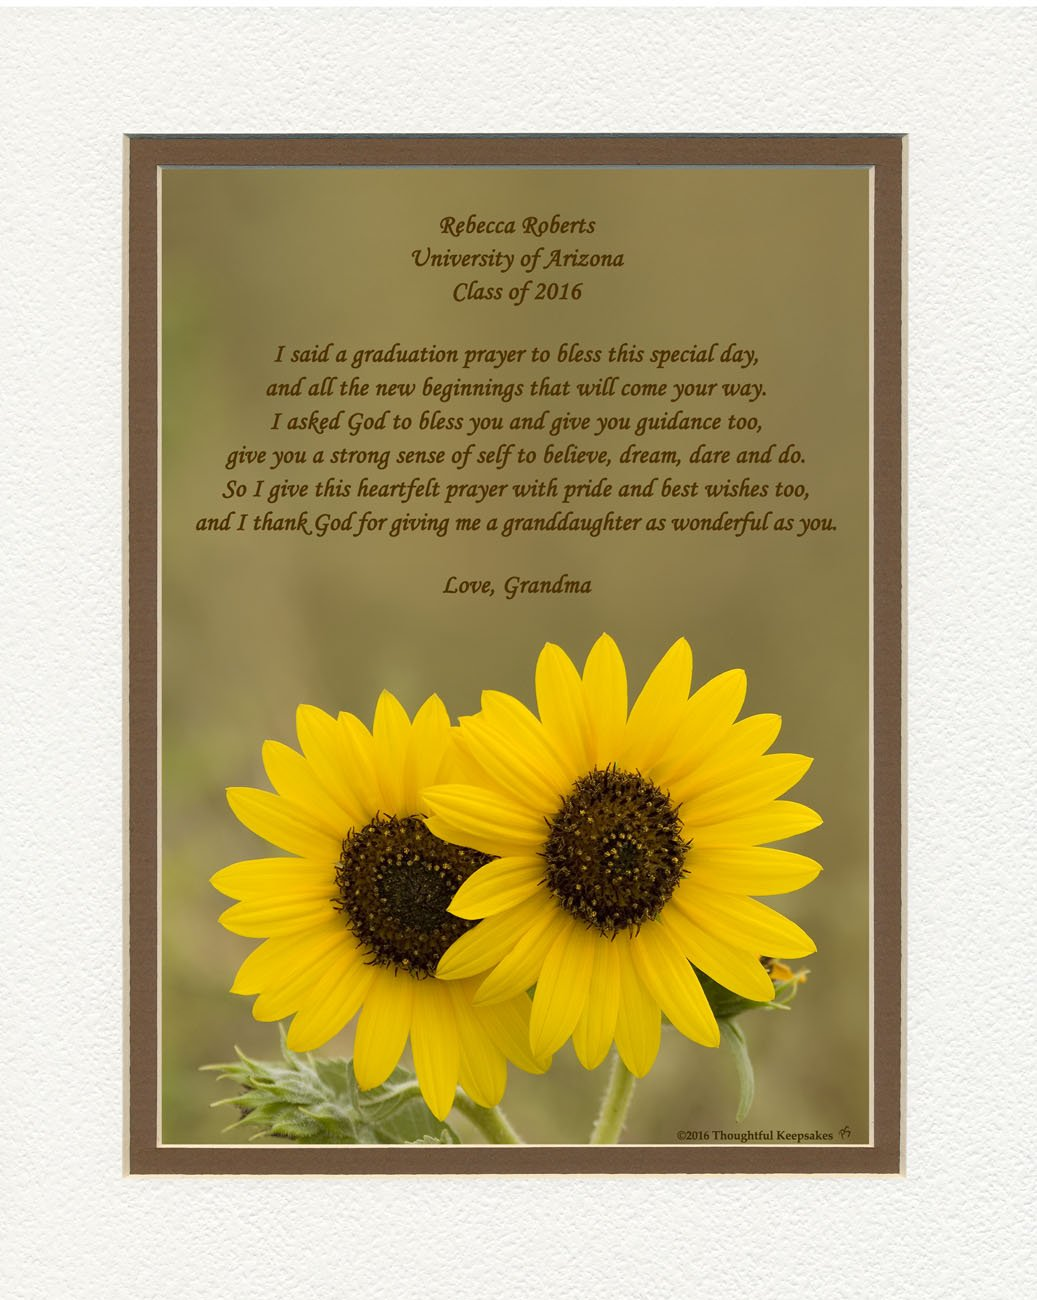 Personalized Granddaughter Graduation Gift with ''Granddaughter Graduation Prayer Poem'' Sunflowers Photo, 8x10 Double Matted. Special Keepsake Graduation Gifts for Granddaughter